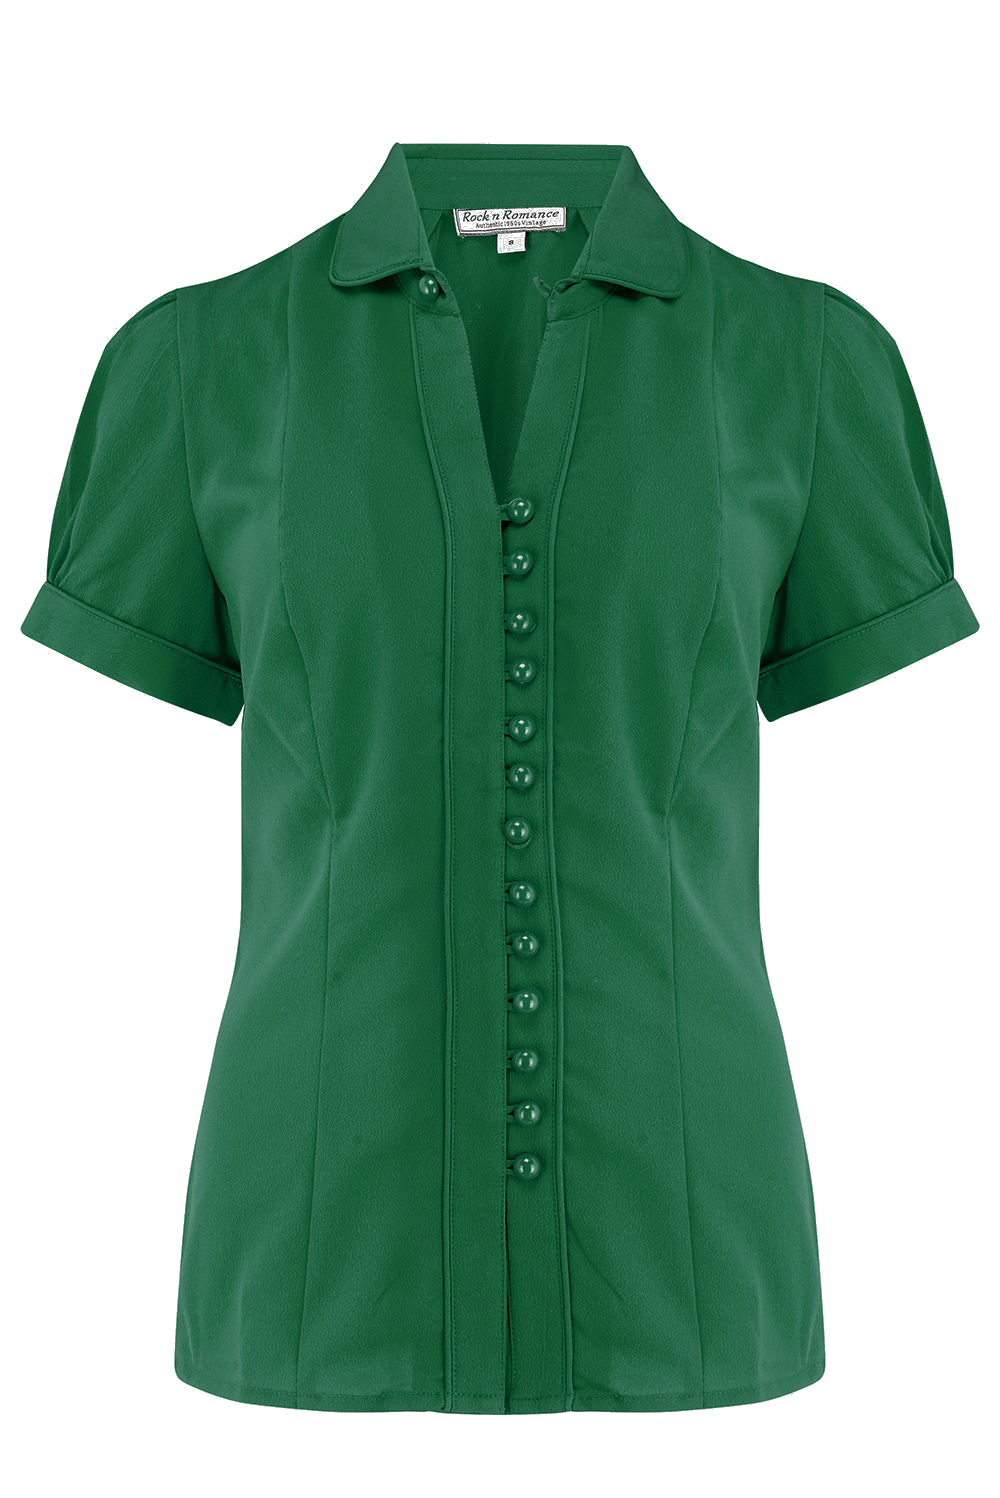 1940s Blouses, Tops, Shirts, Knitwear The Margot Blouse in Solid Green True  Classic 1950s Vintage Style £29.00 AT vintagedancer.com